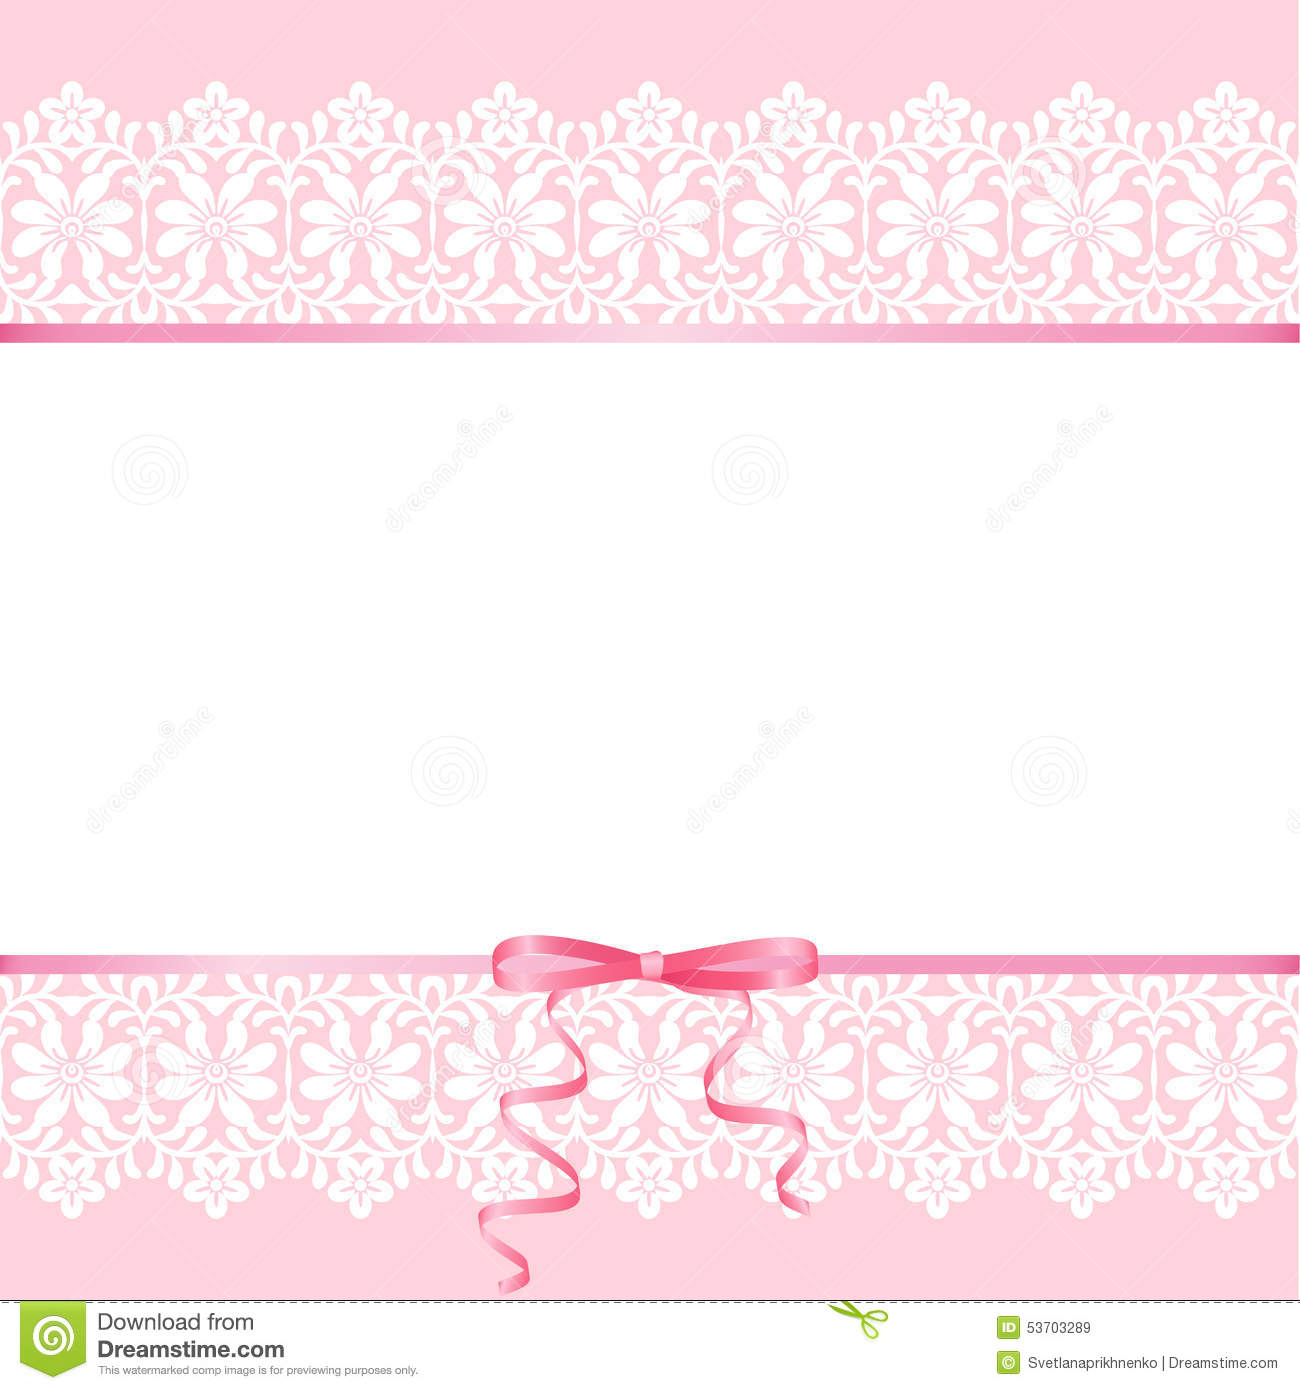 Baby Girl Wallpaper Borders Pink And Purple Lace On Pink Background Stock Vector Illustration Of